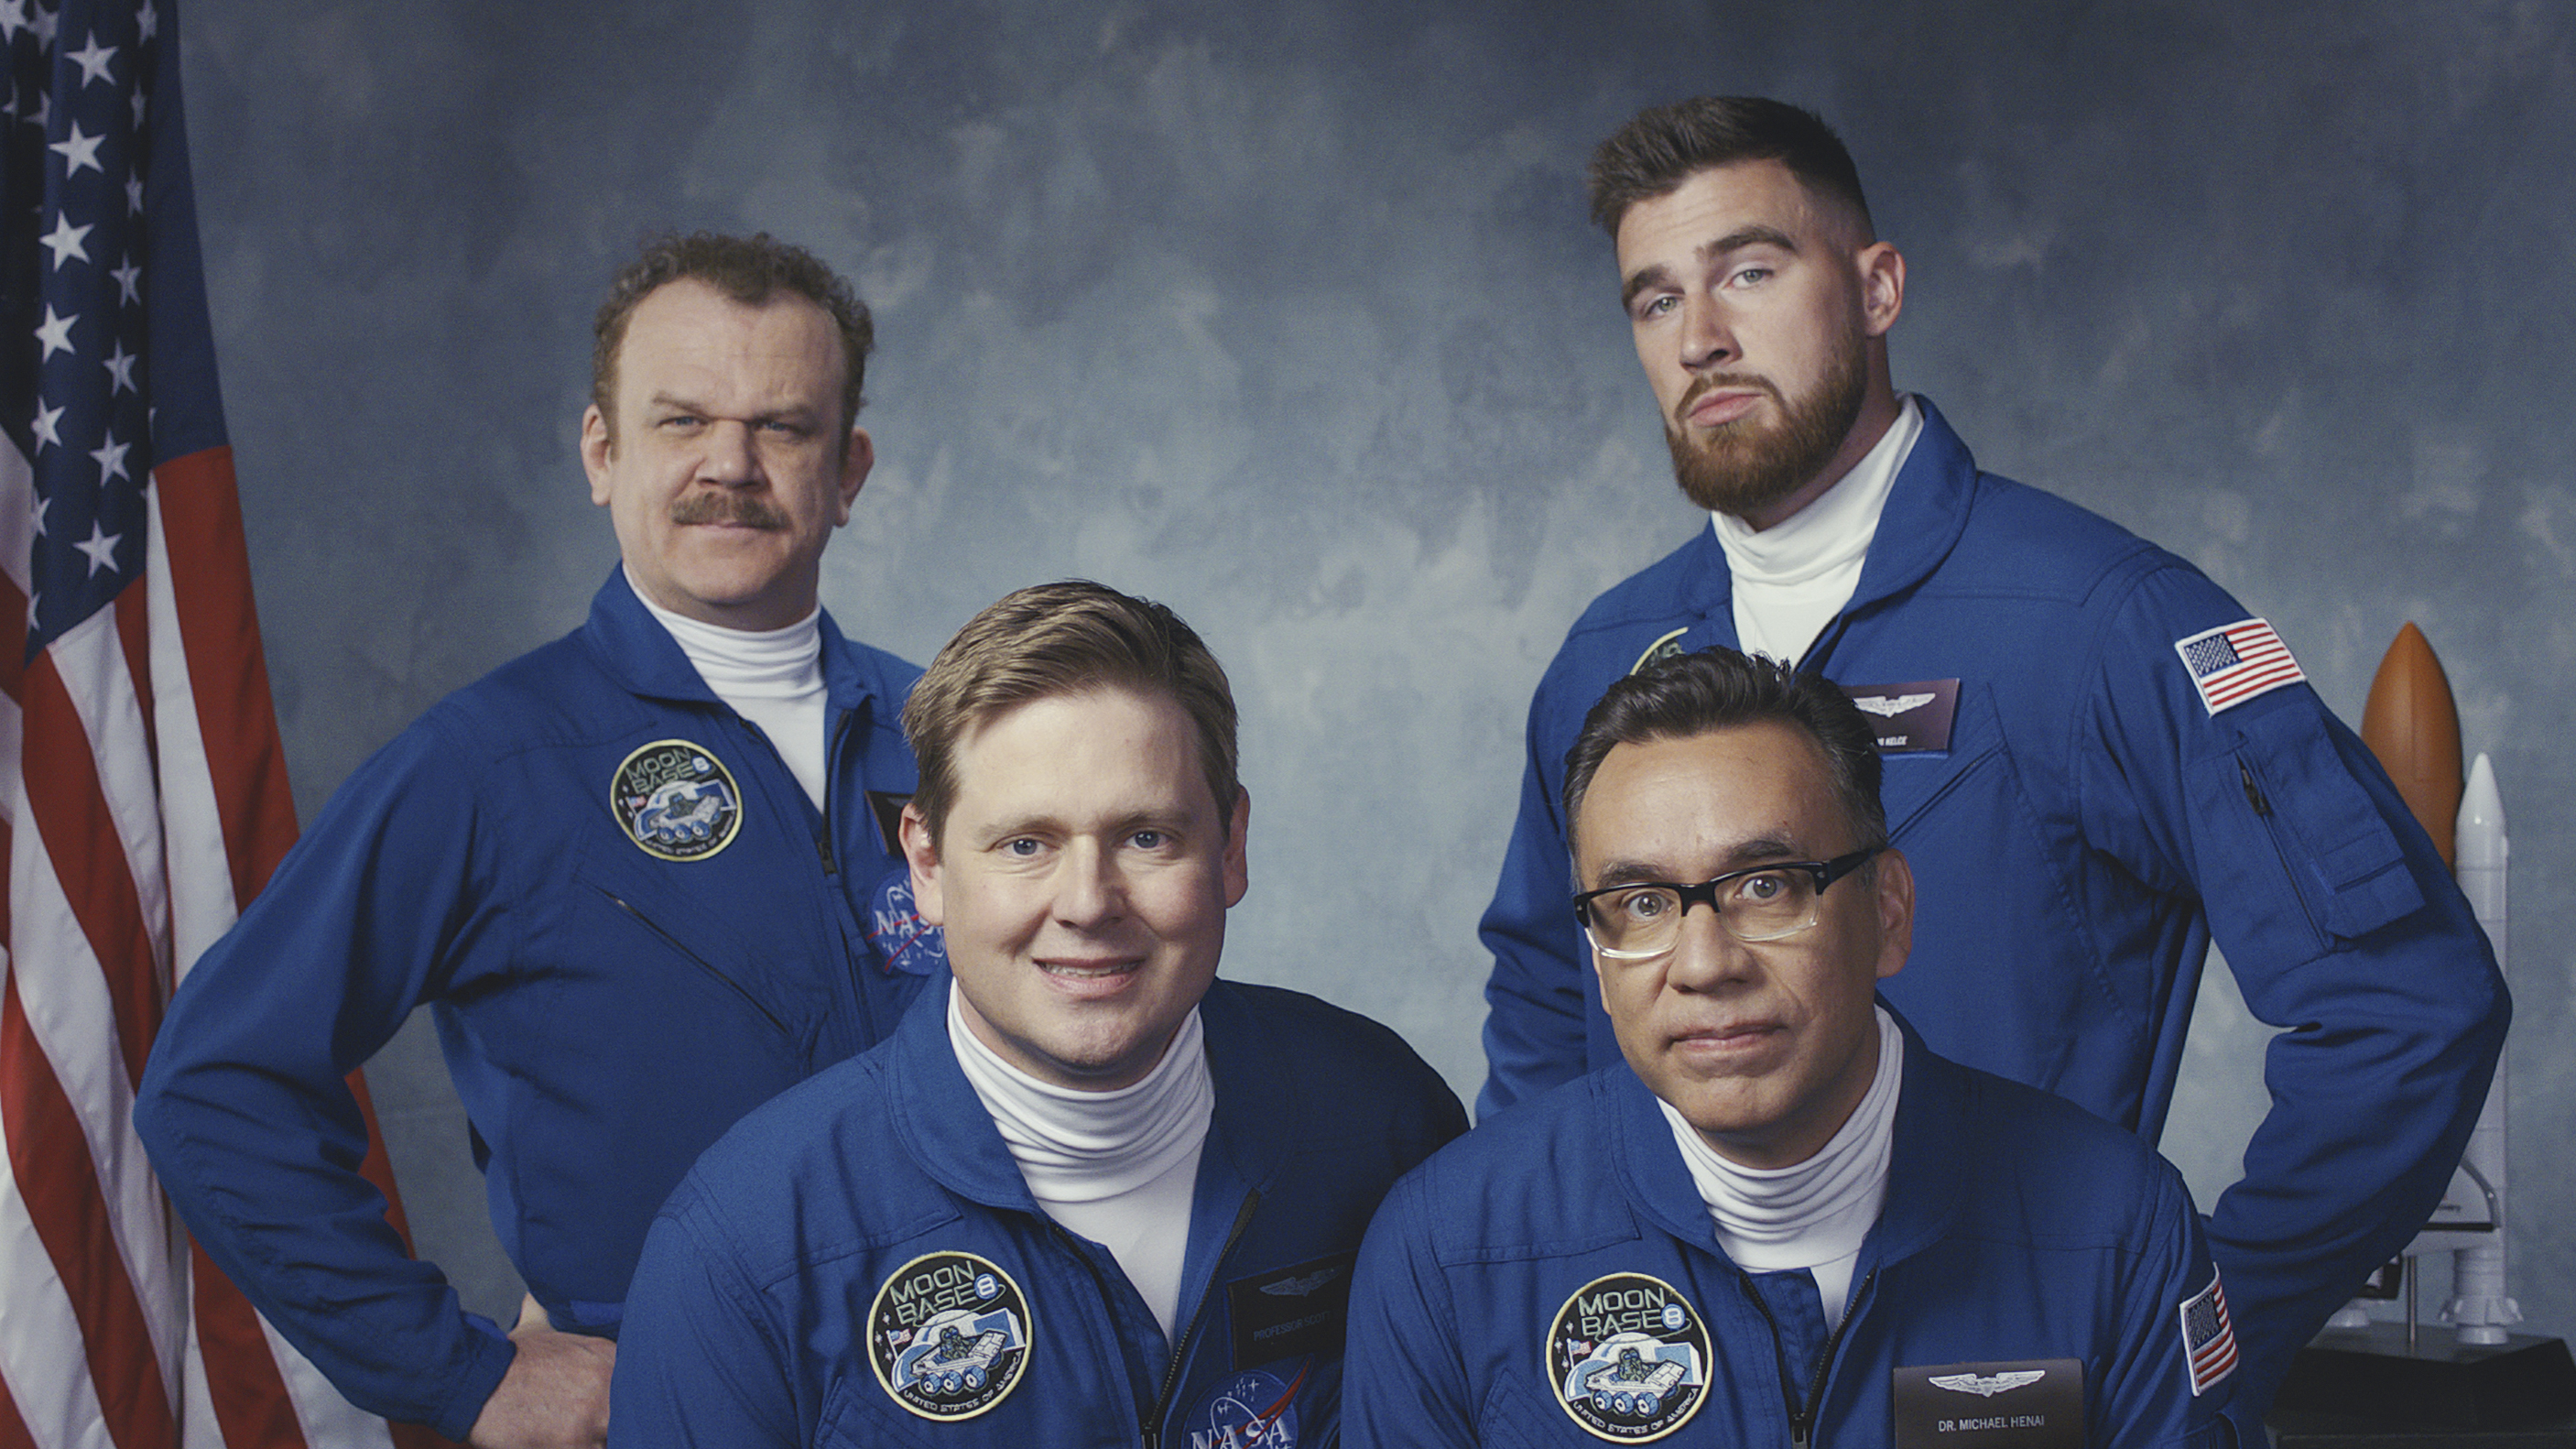 John C. Reilly, Tim Heidecker, Fred Armisen, and Travis Kelce in a posed photo for Moonbase 8